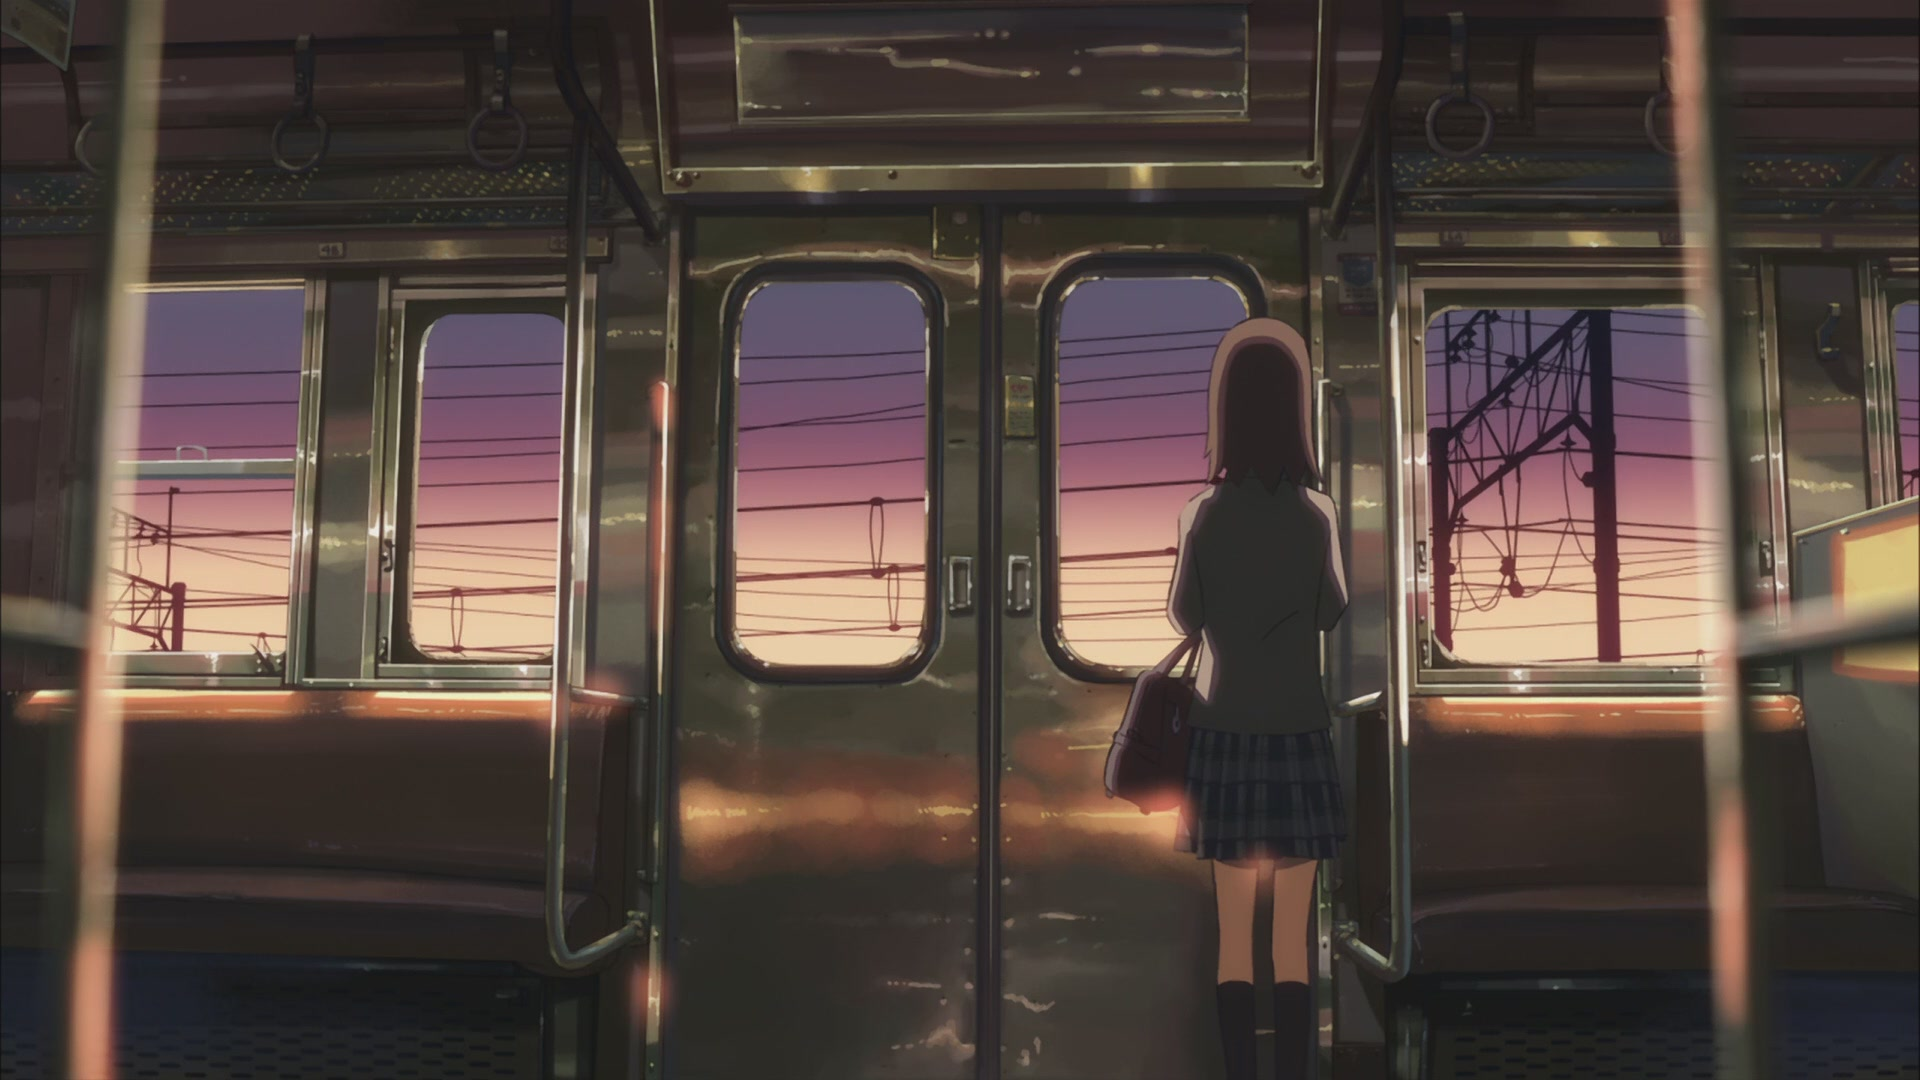 27 Images About 5 Centimeter Per Second On We Heart It See More About Anime 5 Centimeters Per Second And Amazing